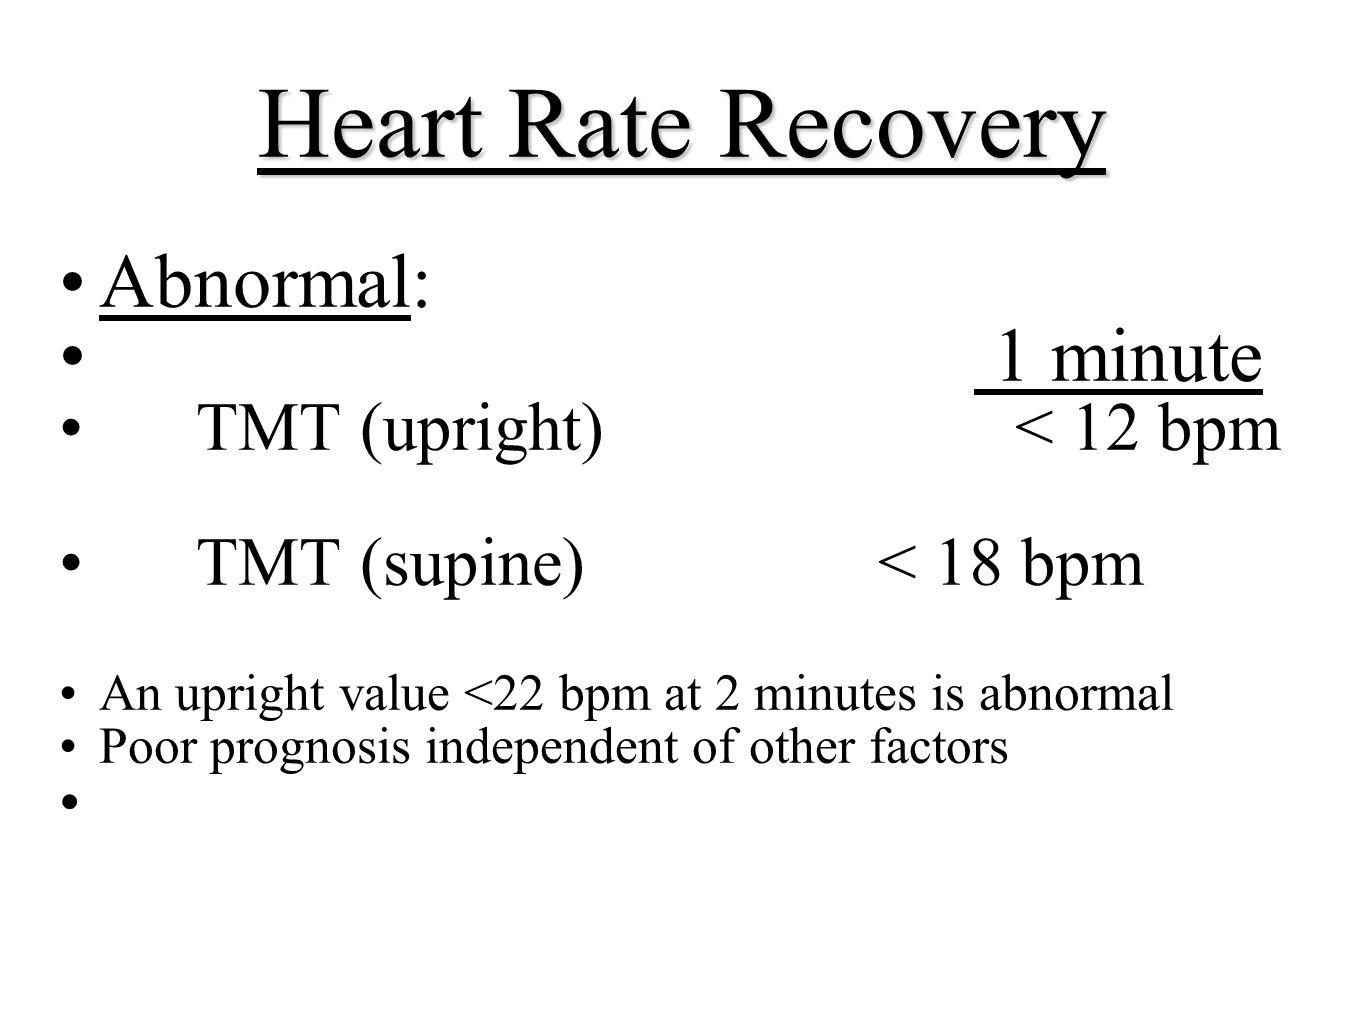 Heart Rate Recovery Abnormal: 1 minute TMT (upright) < 12 bpm